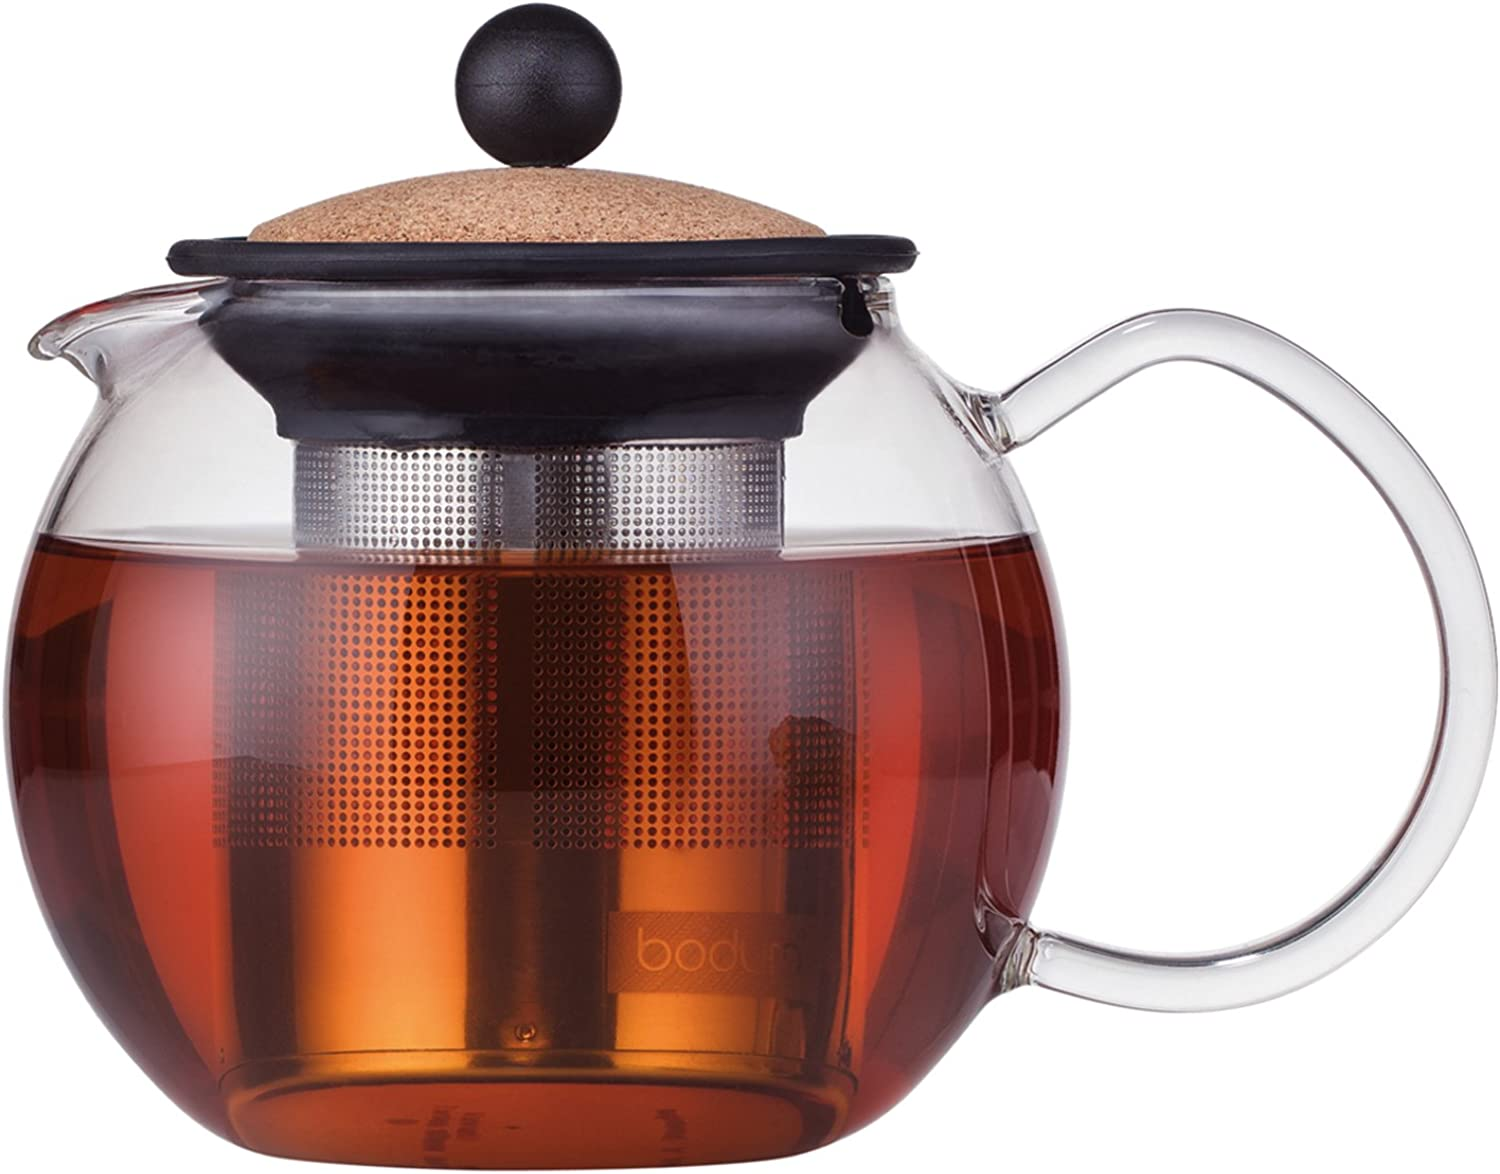 Bodum Assam Tea Press, 17-Ounce, Cork